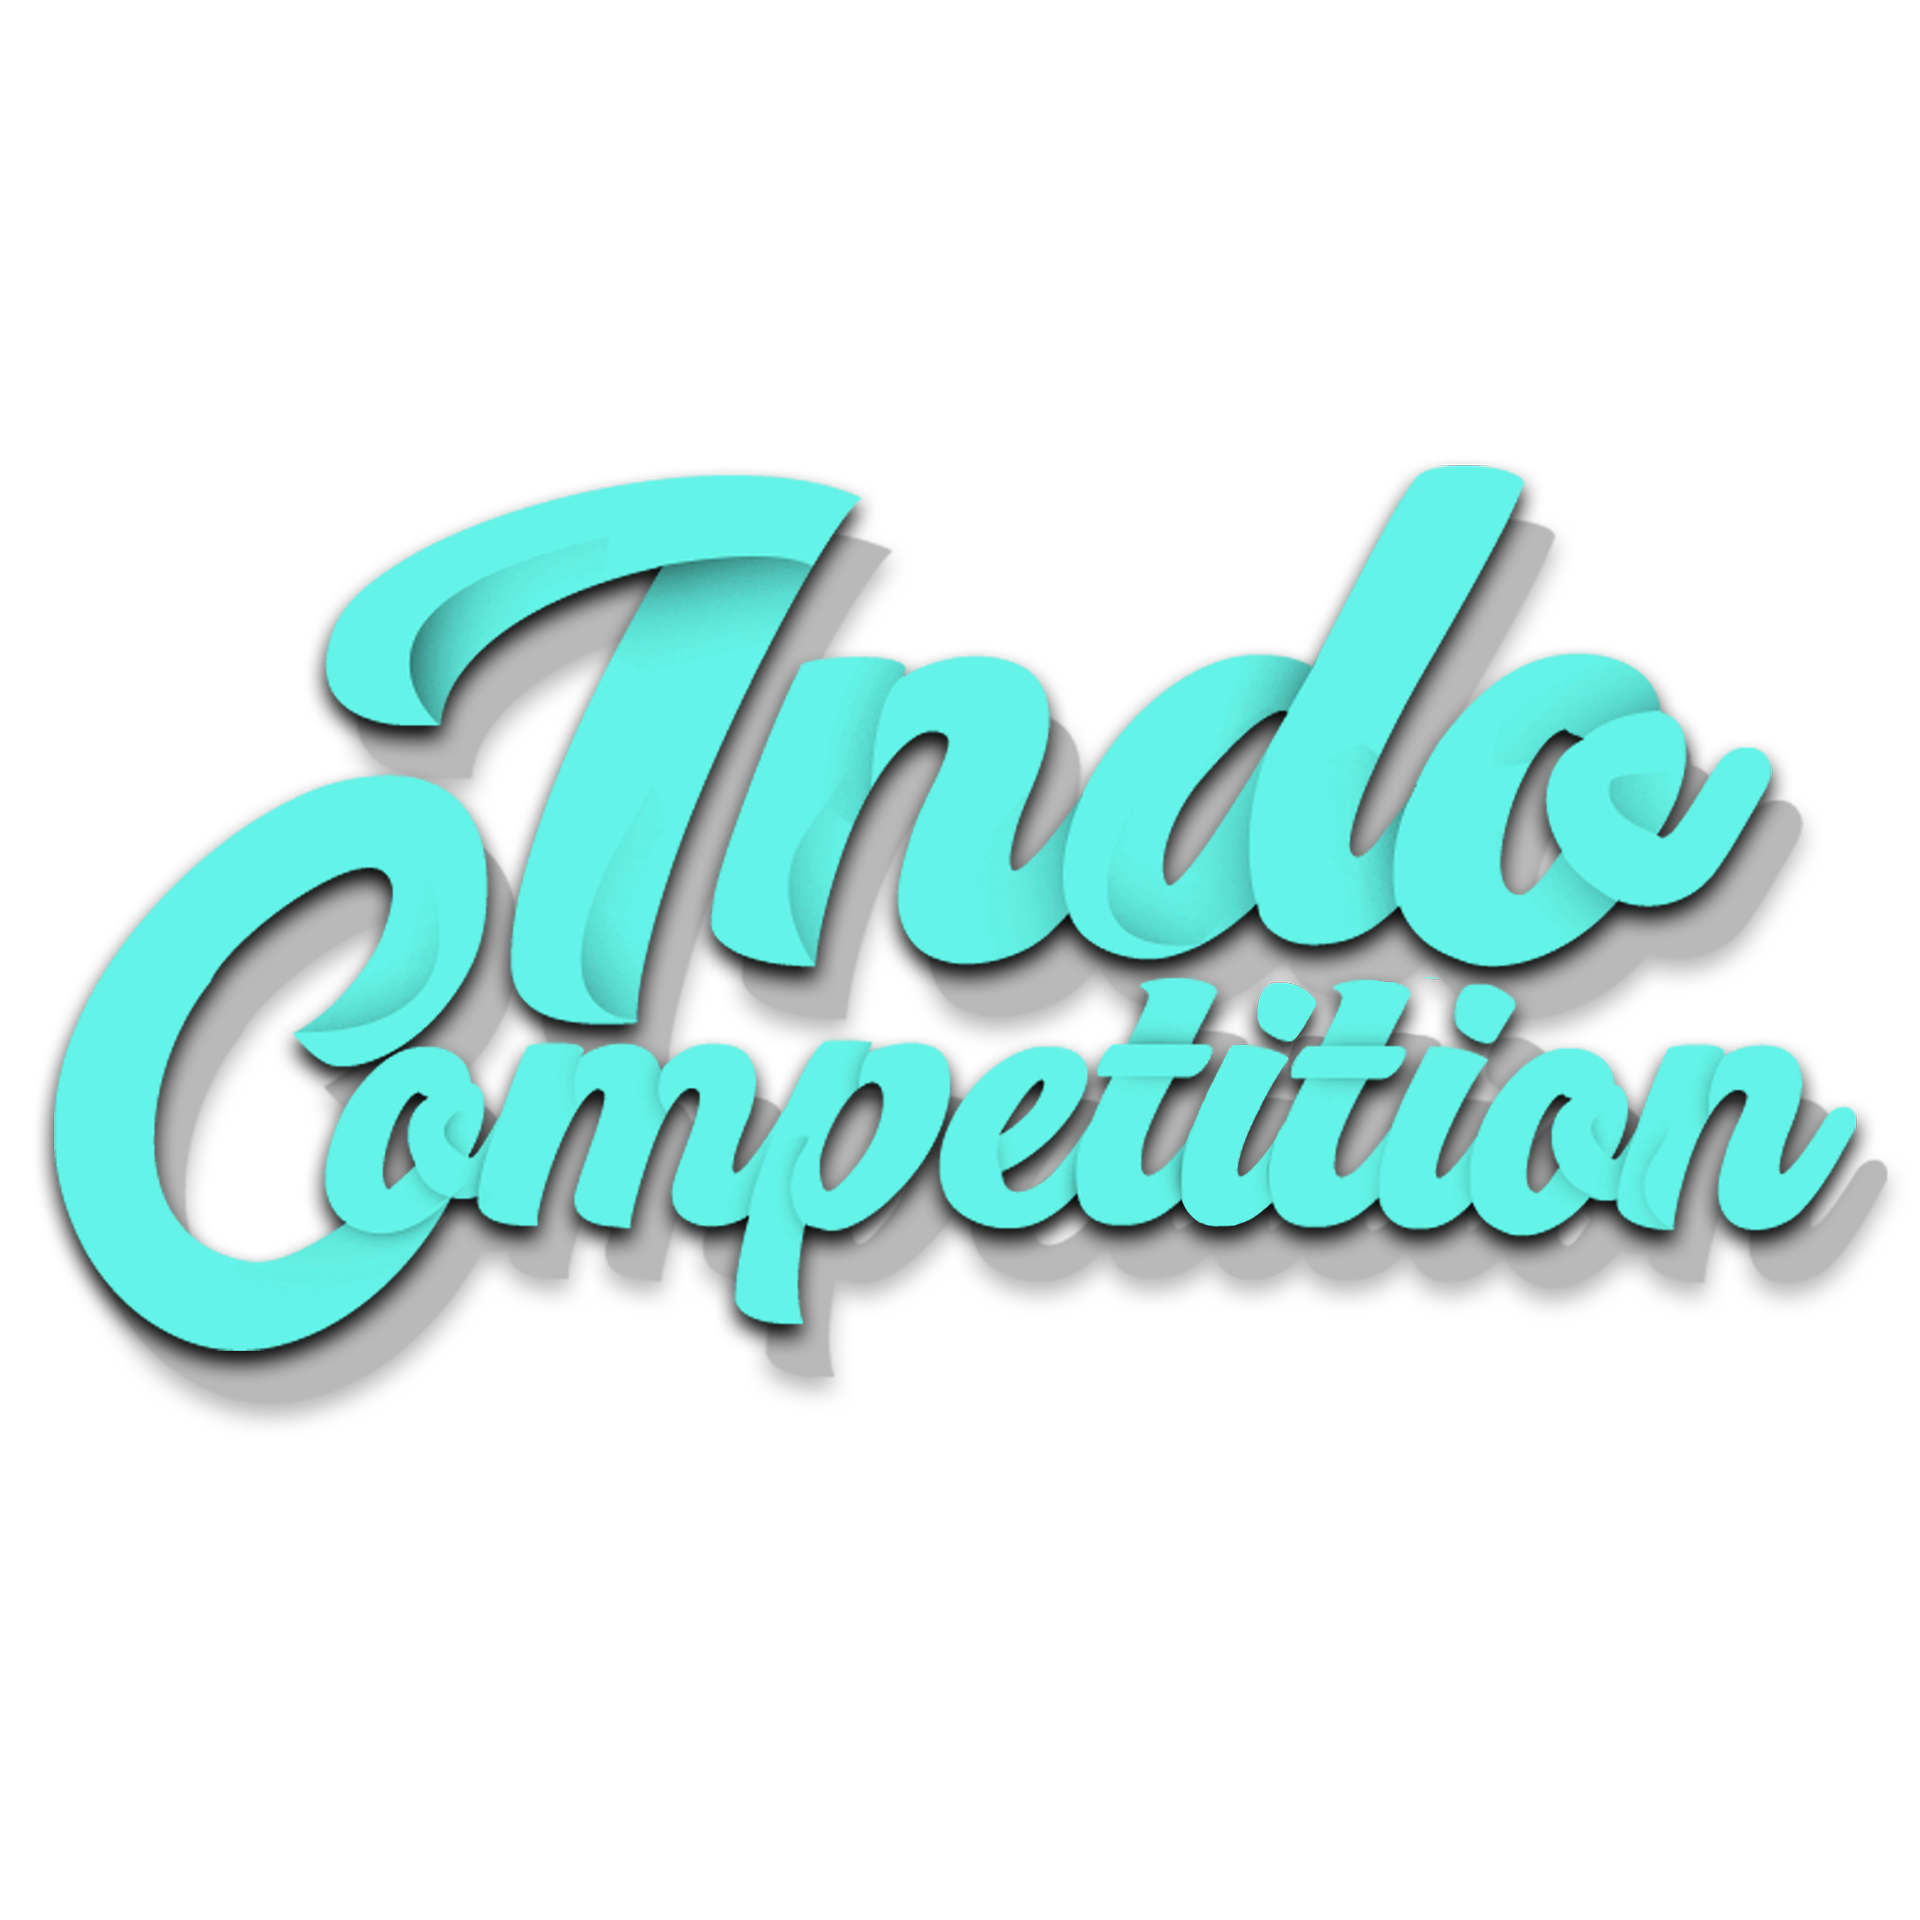 Invent and development competition